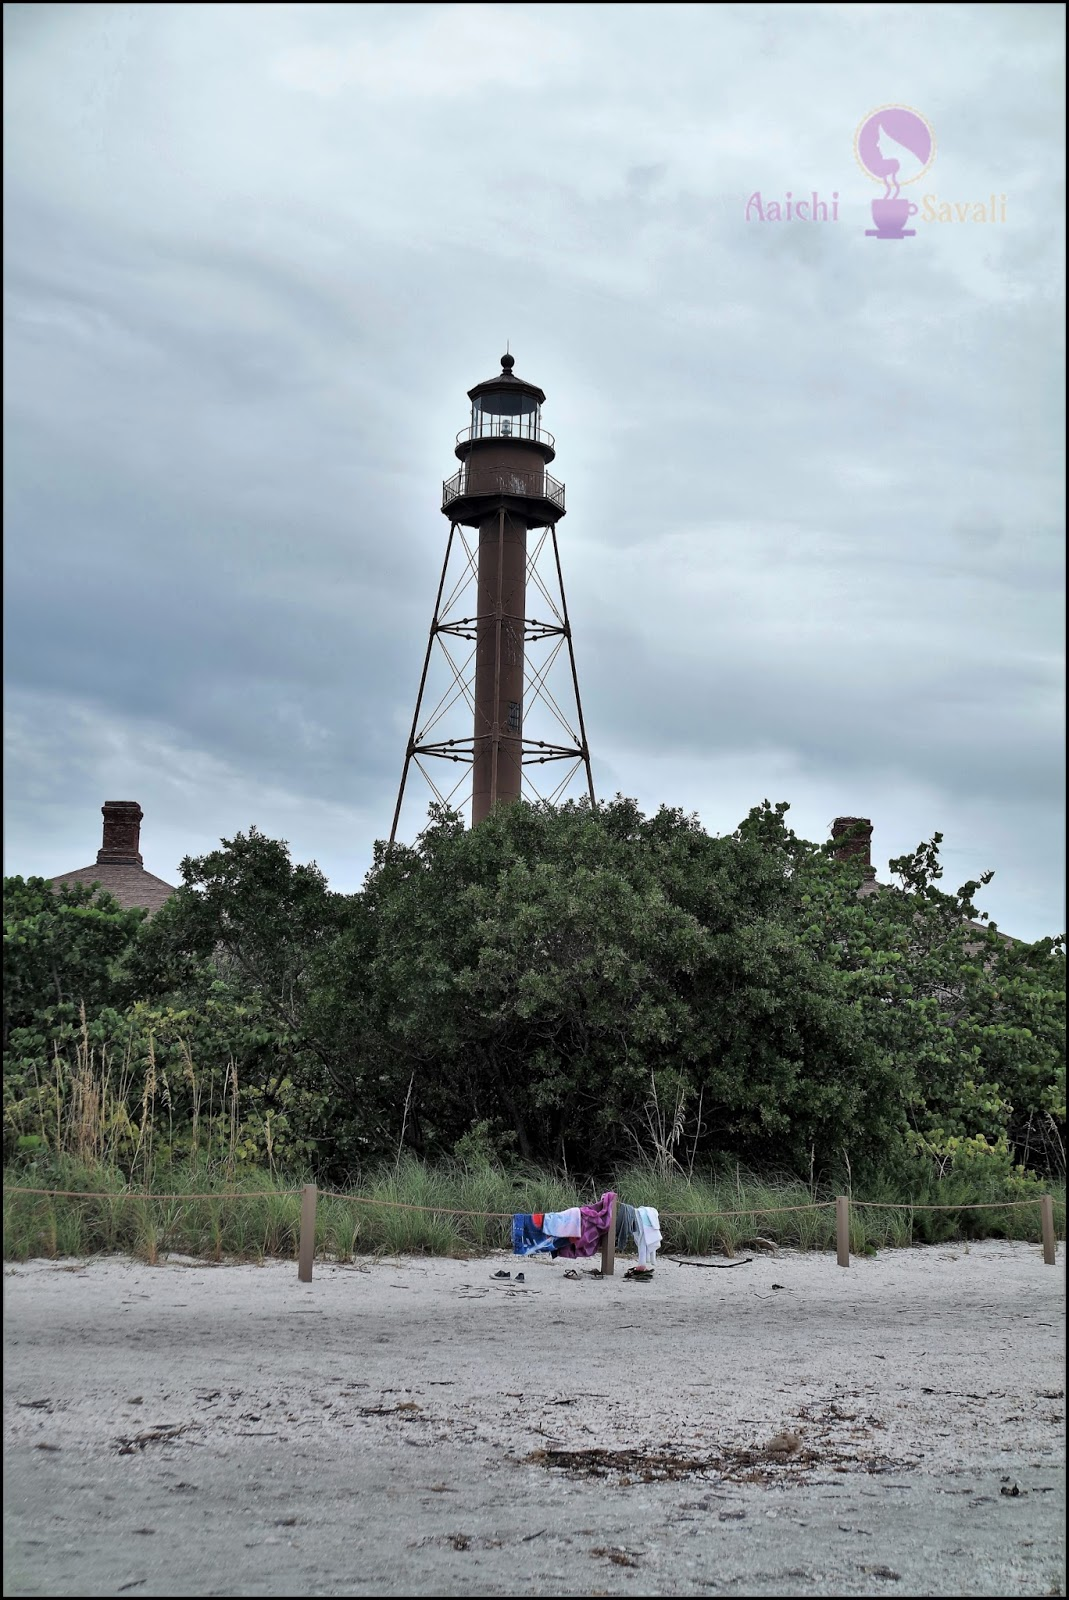 The Lighthouse Is Just One Of Many Things To Spend Time Doing Here. The Sanibel  Island Lighthouse Or Point Ybel Light Was One Of The First Lighthouses On  ...